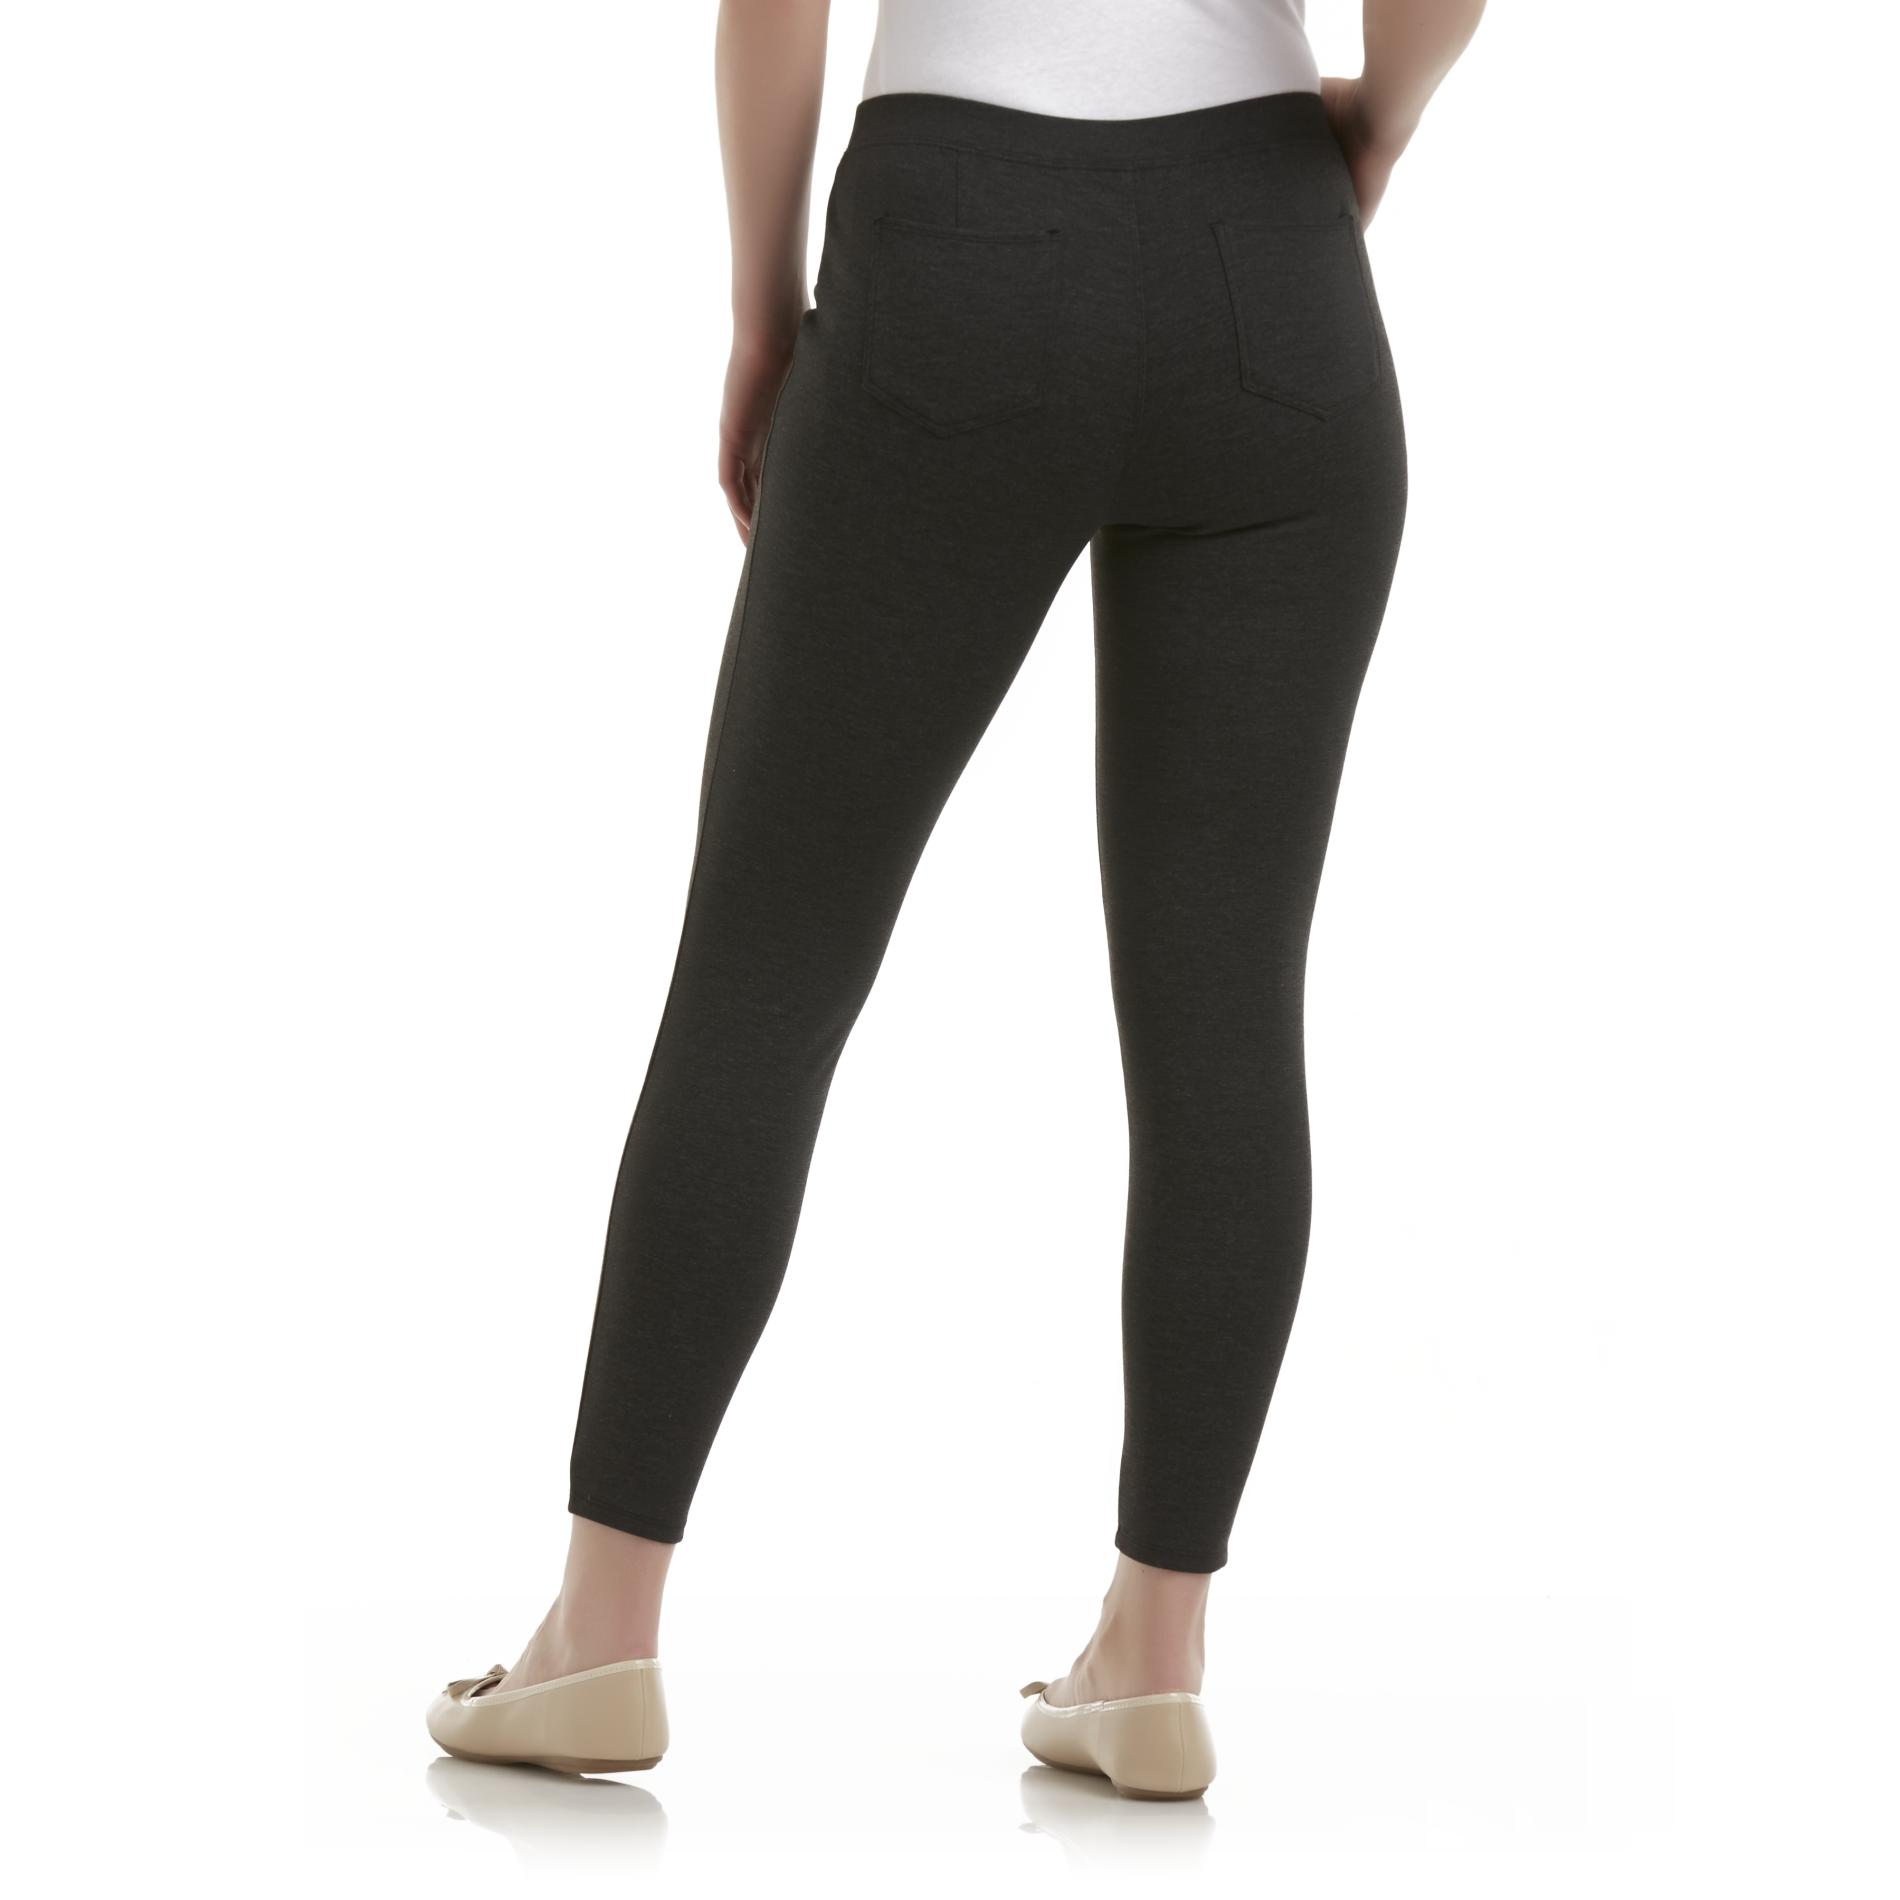 Metaphor Women's Ponte Knit Pants